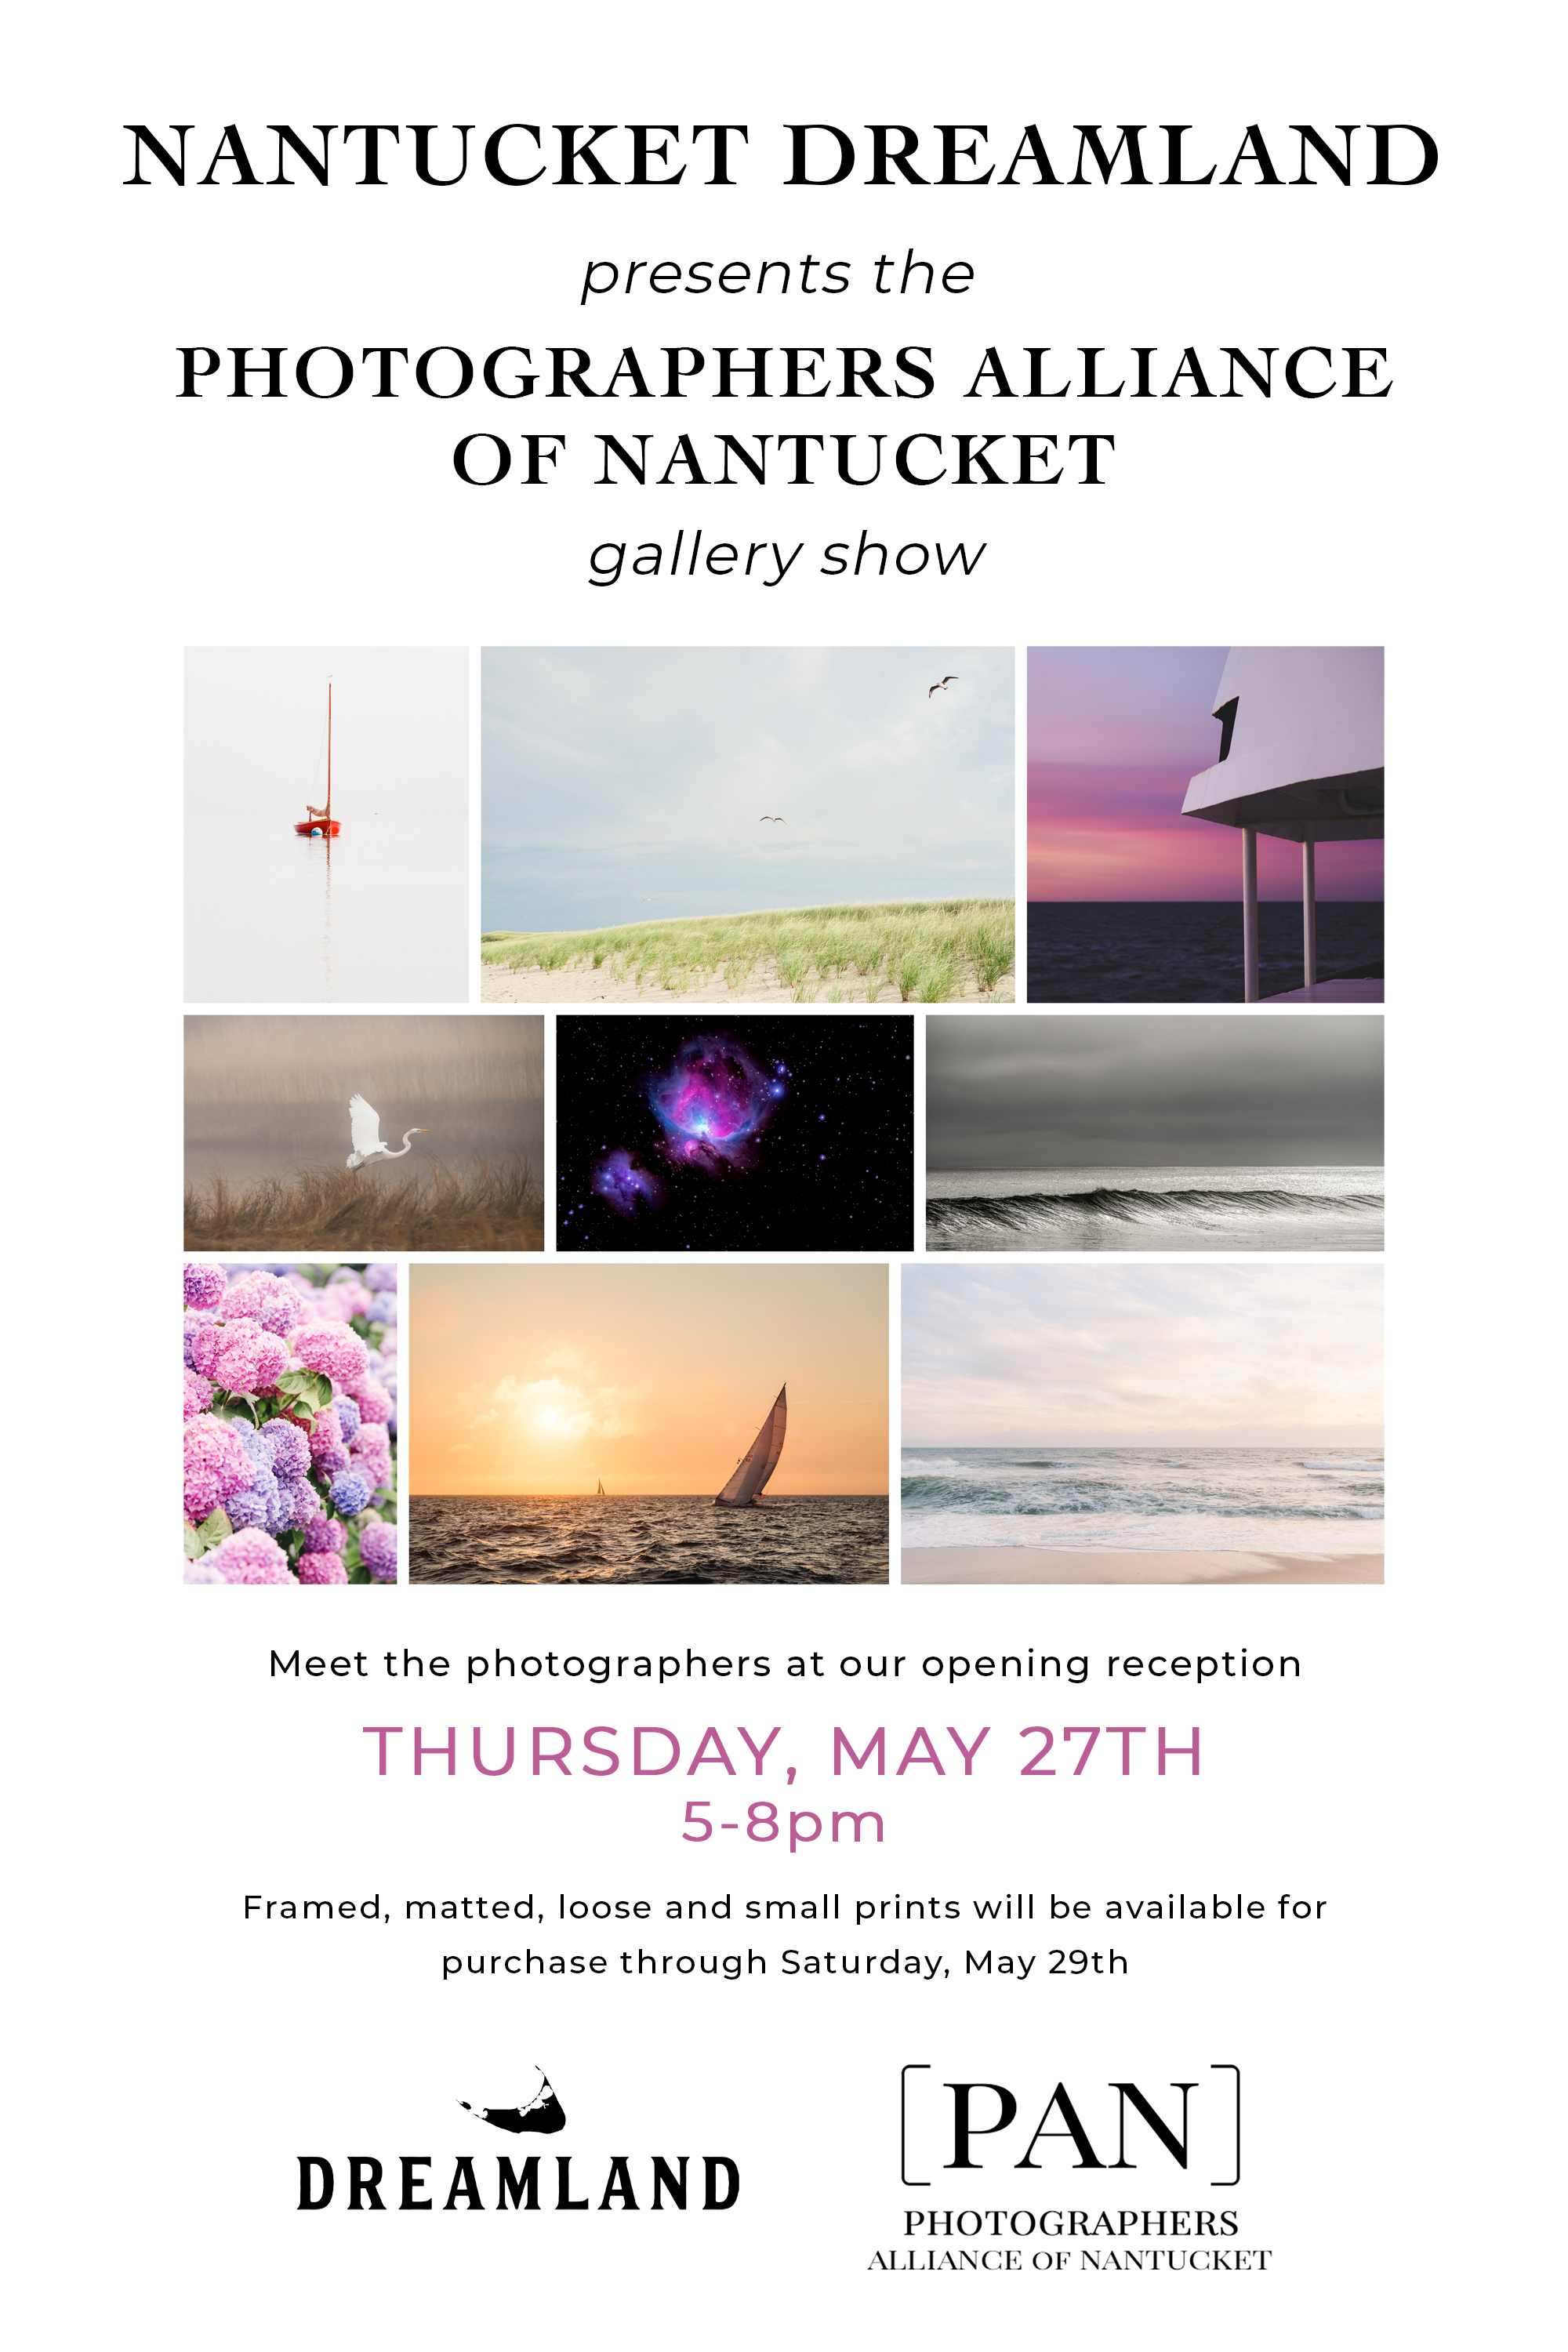 Dreamland Nantucket Gallery Show, May 27-29th, 2021